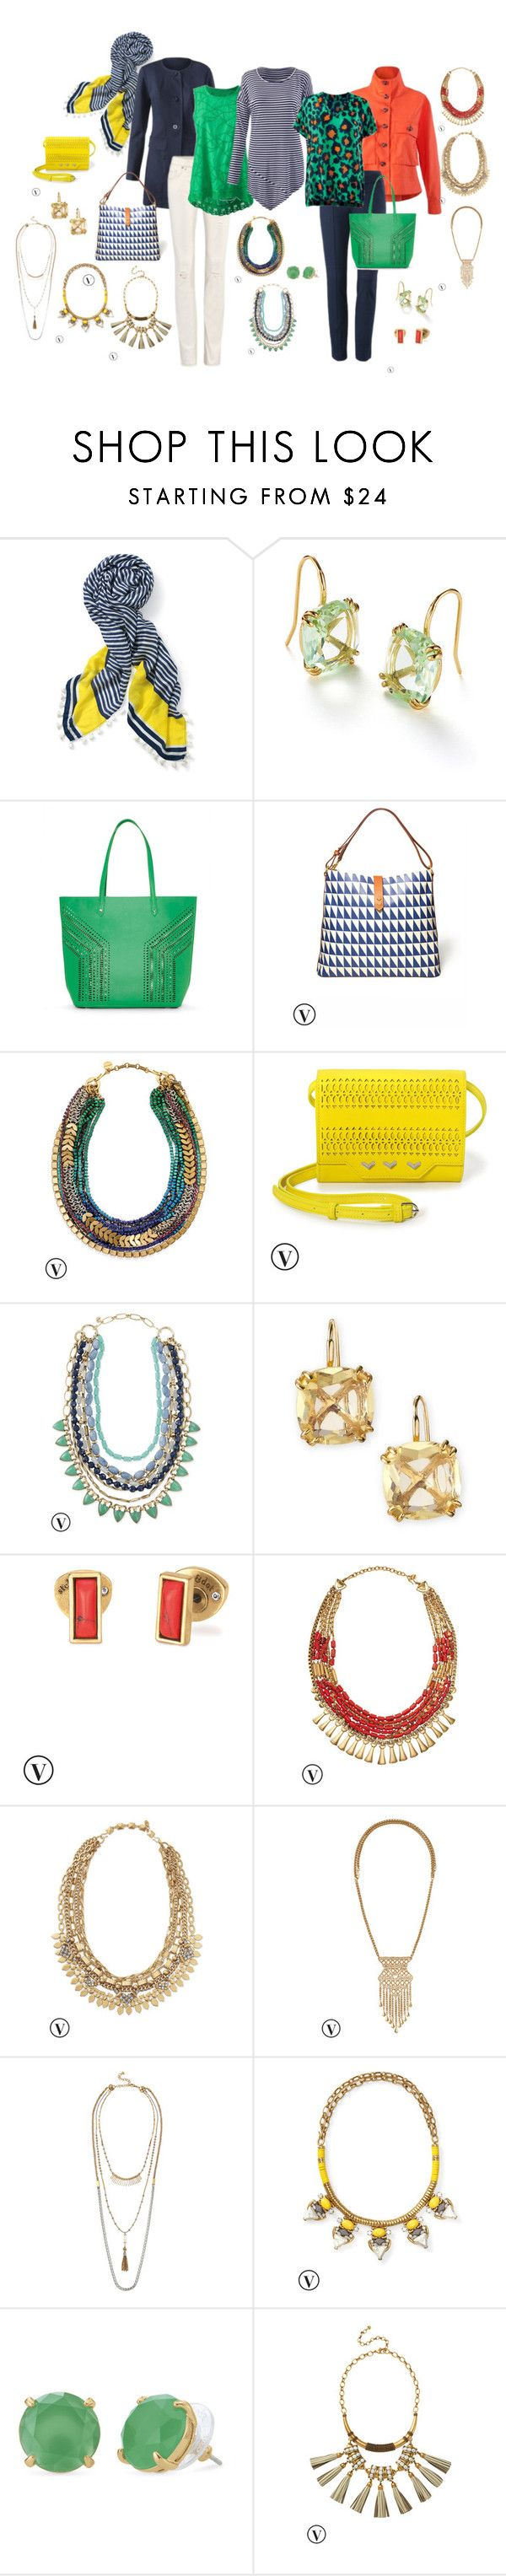 Cabi Spring 2016 by rtaberski on Polyvore featuring Stella & Dot, CAbi, women's clothing, women's fashion, women, female, woman, misses and juniors